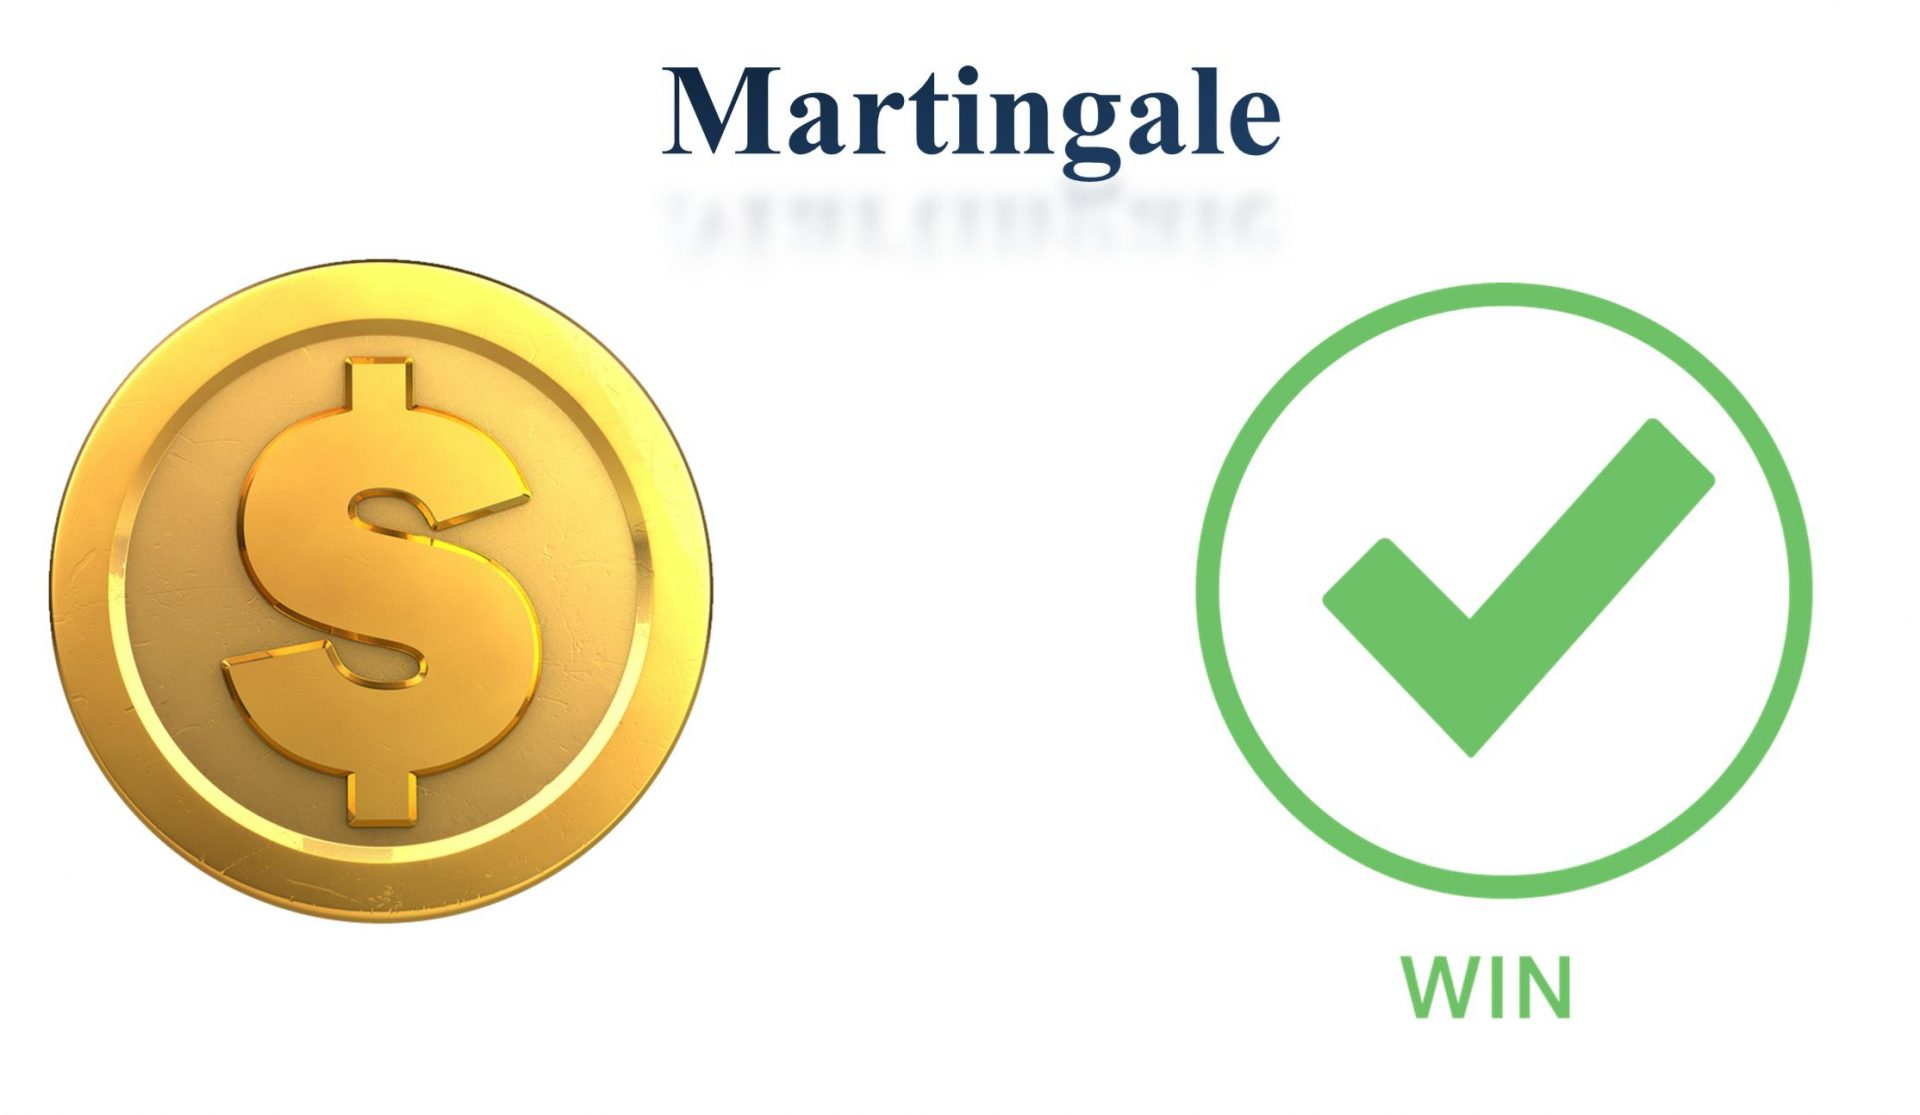 What are the conditions for using the Martingale method